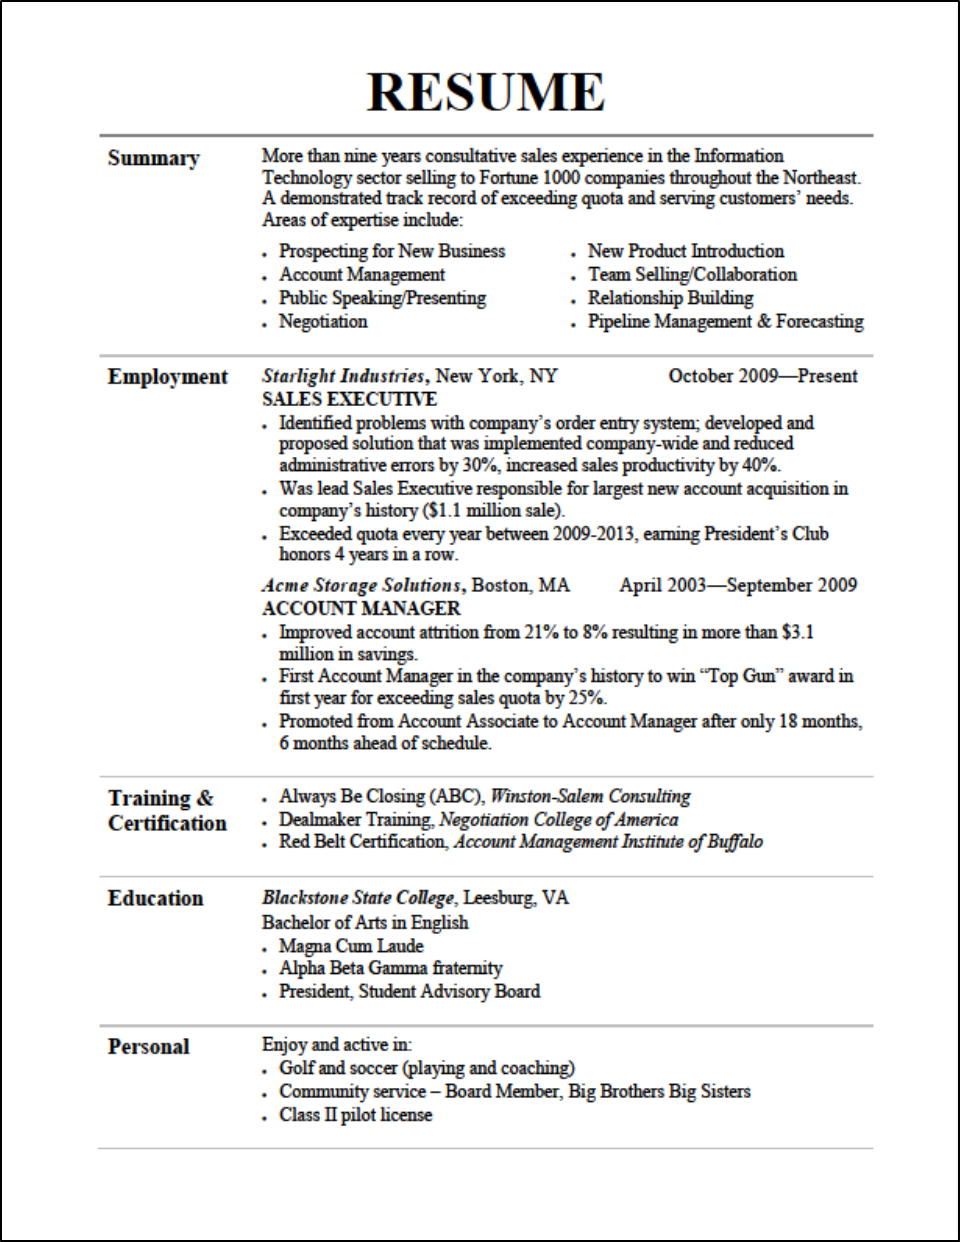 Resume Editing Services. Professional Resume Writing Services That